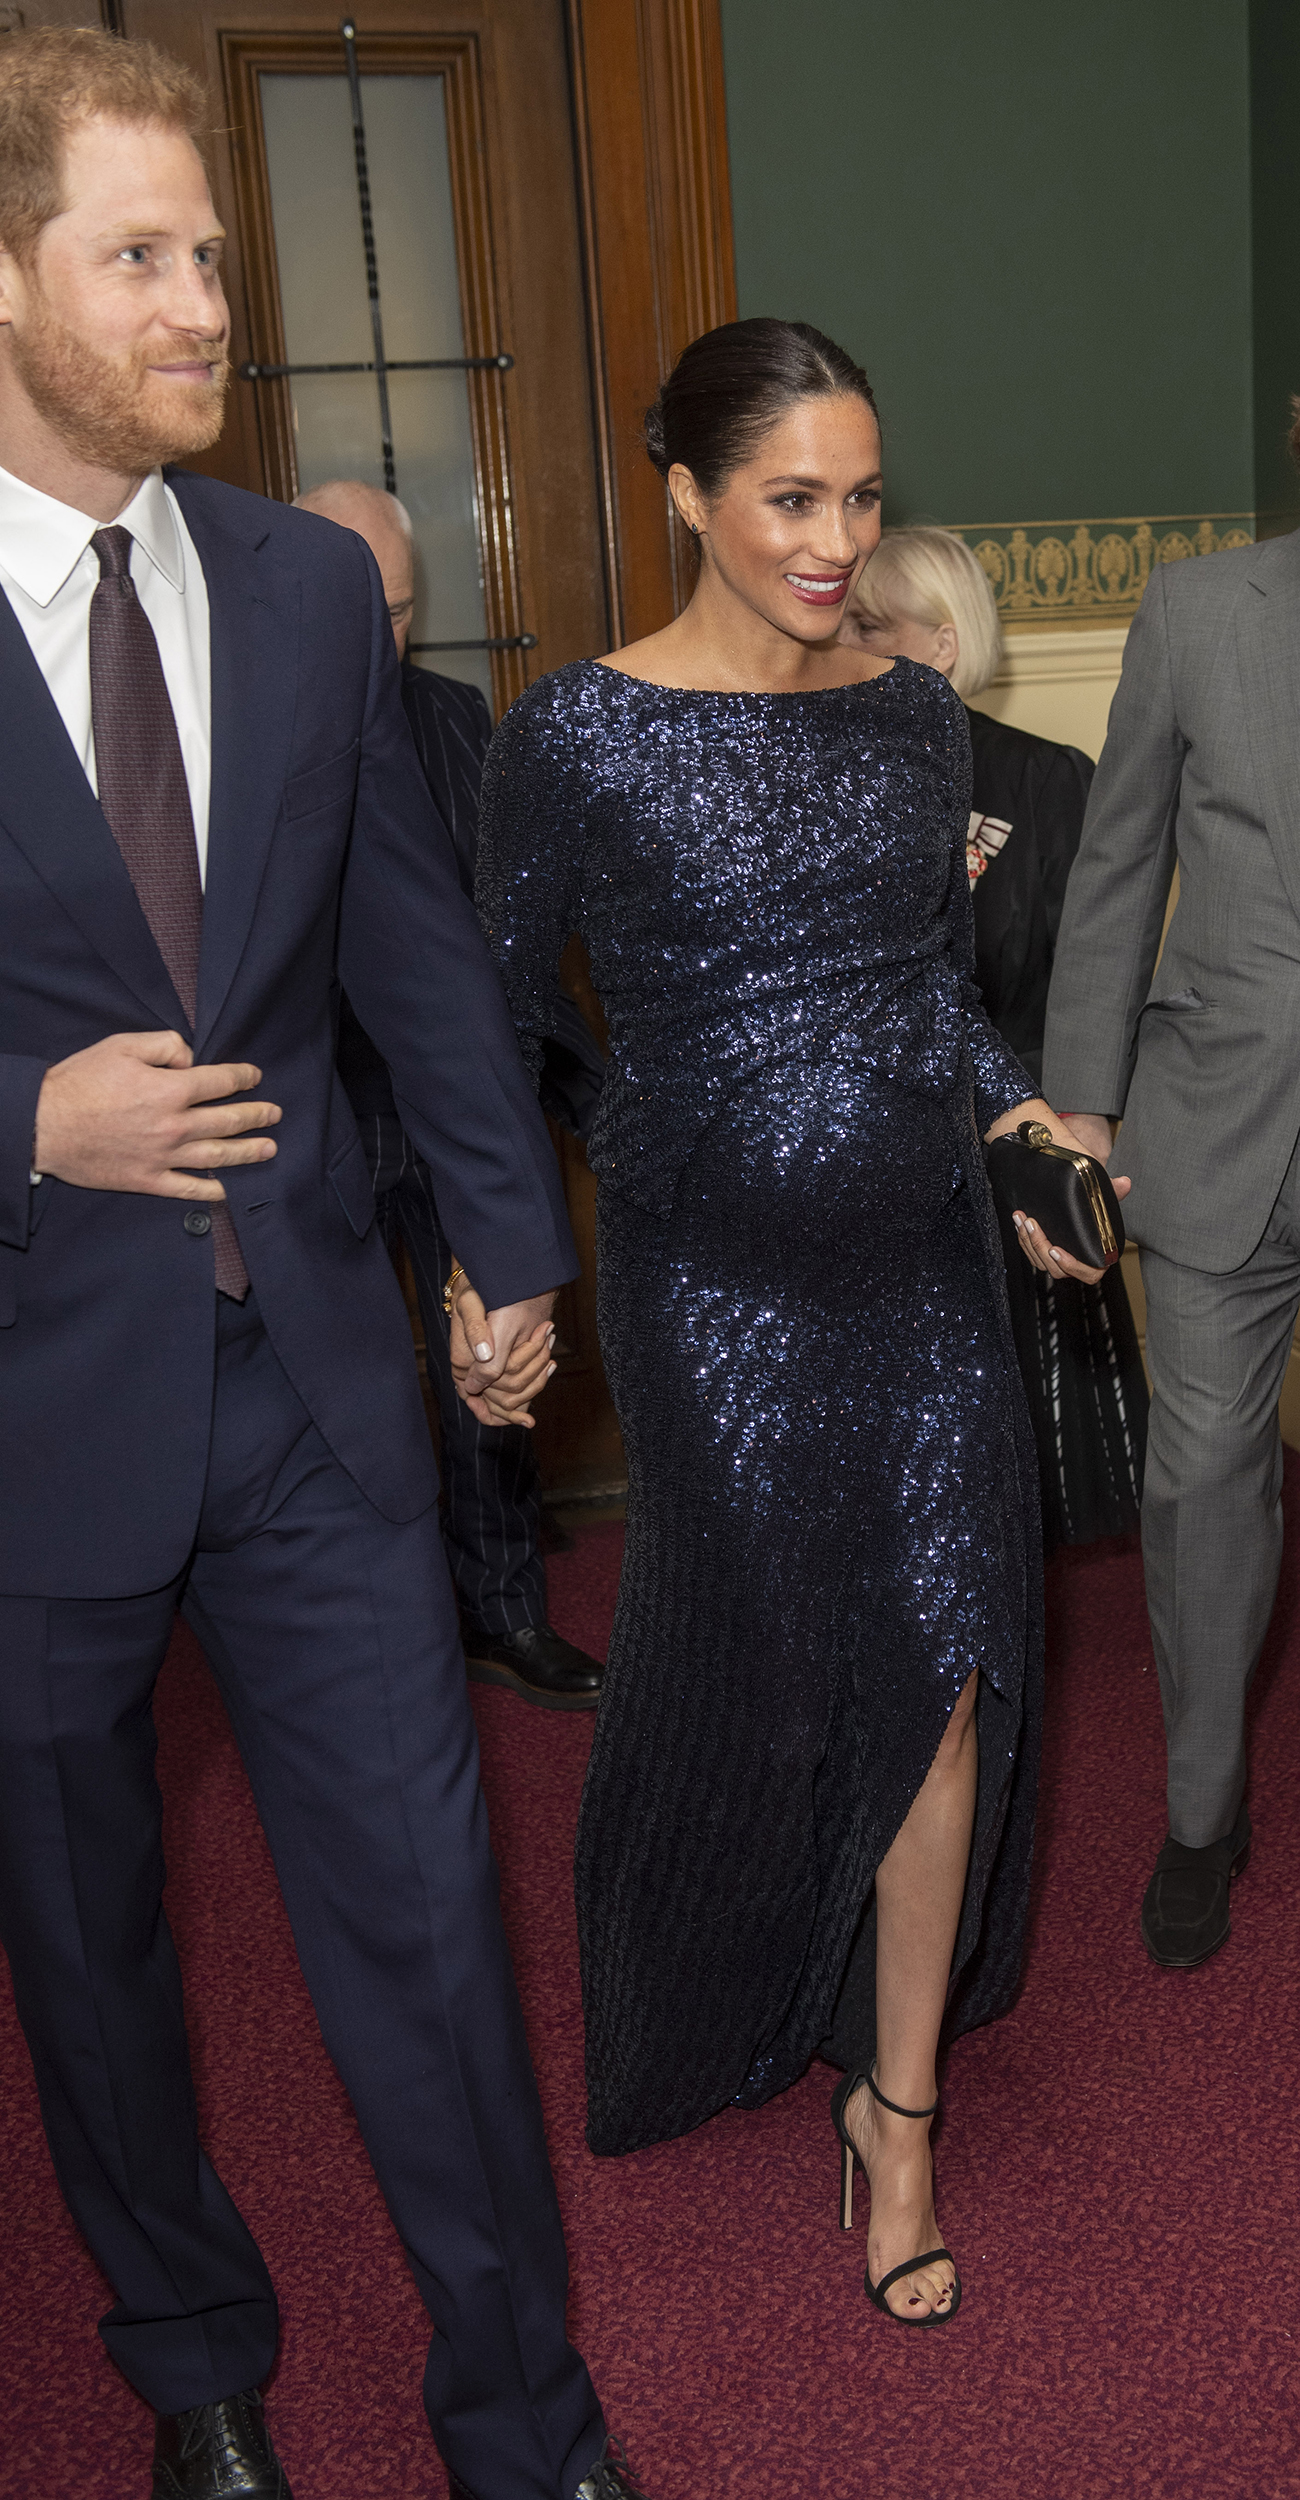 Meghan Markle Dazzles In Sparkly Blue Maternity Gown